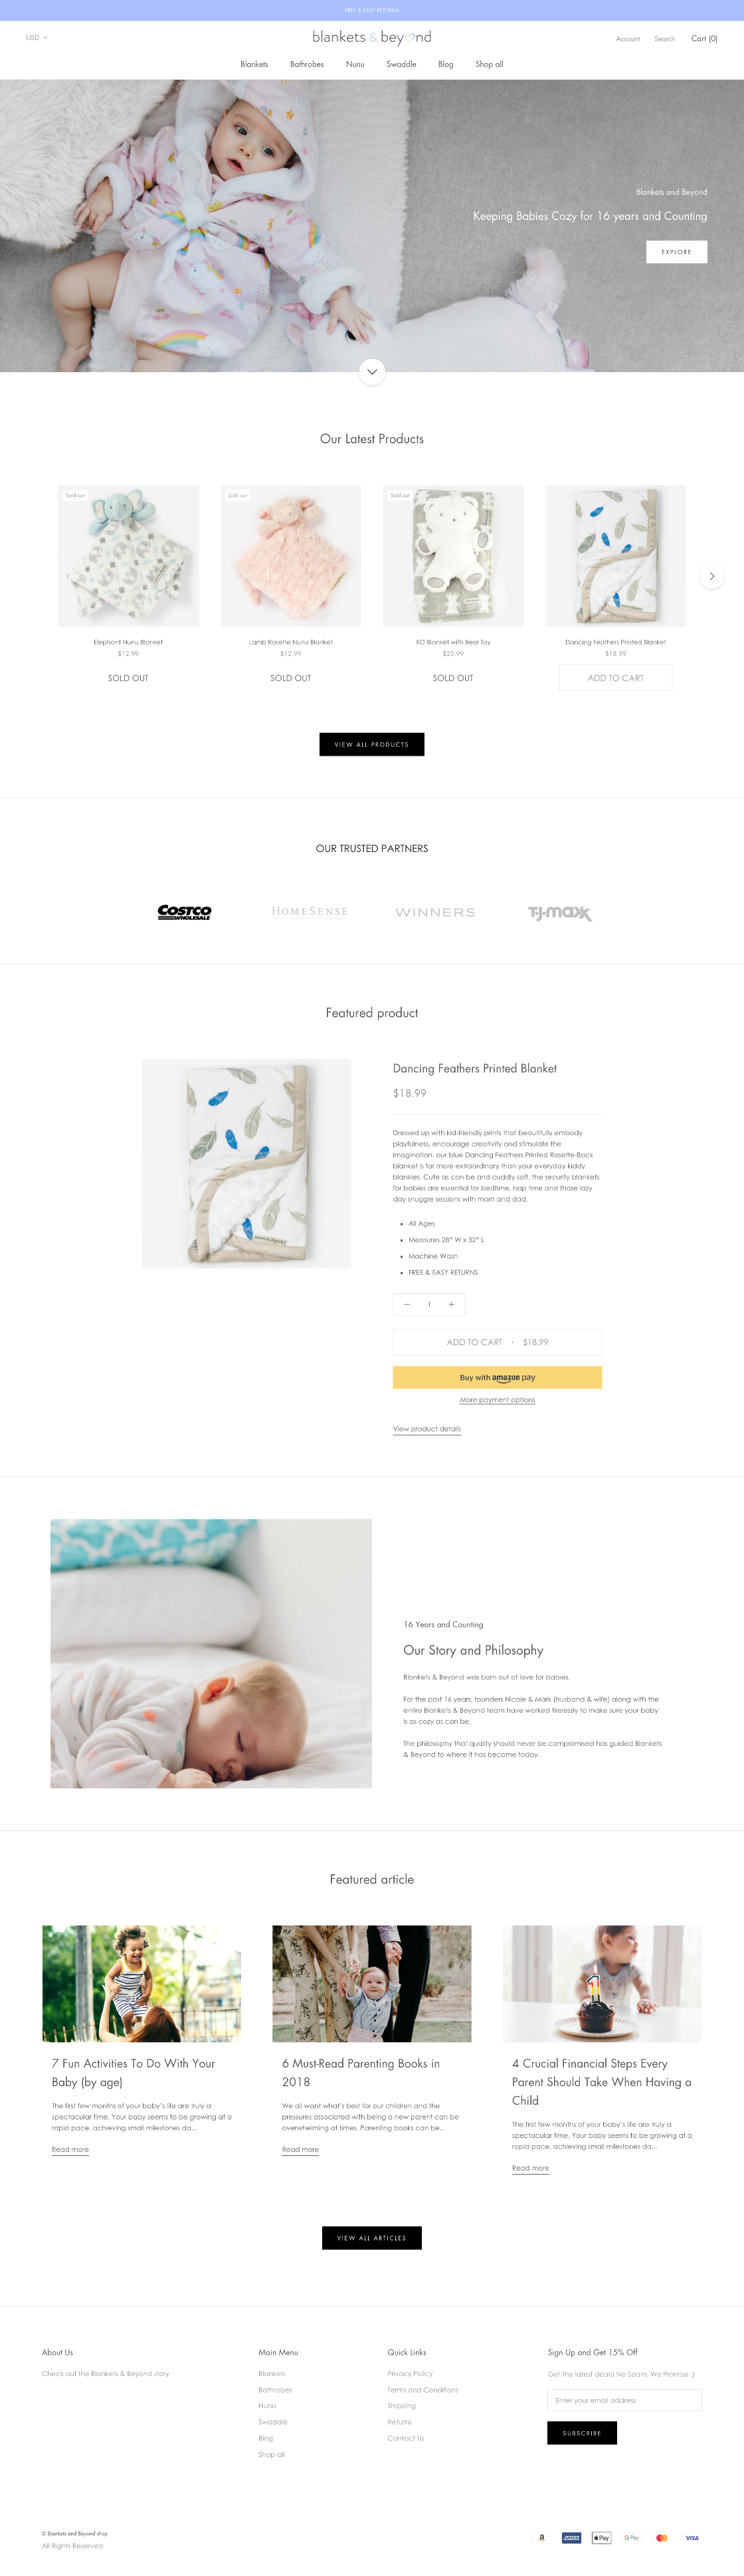 website project in shopify